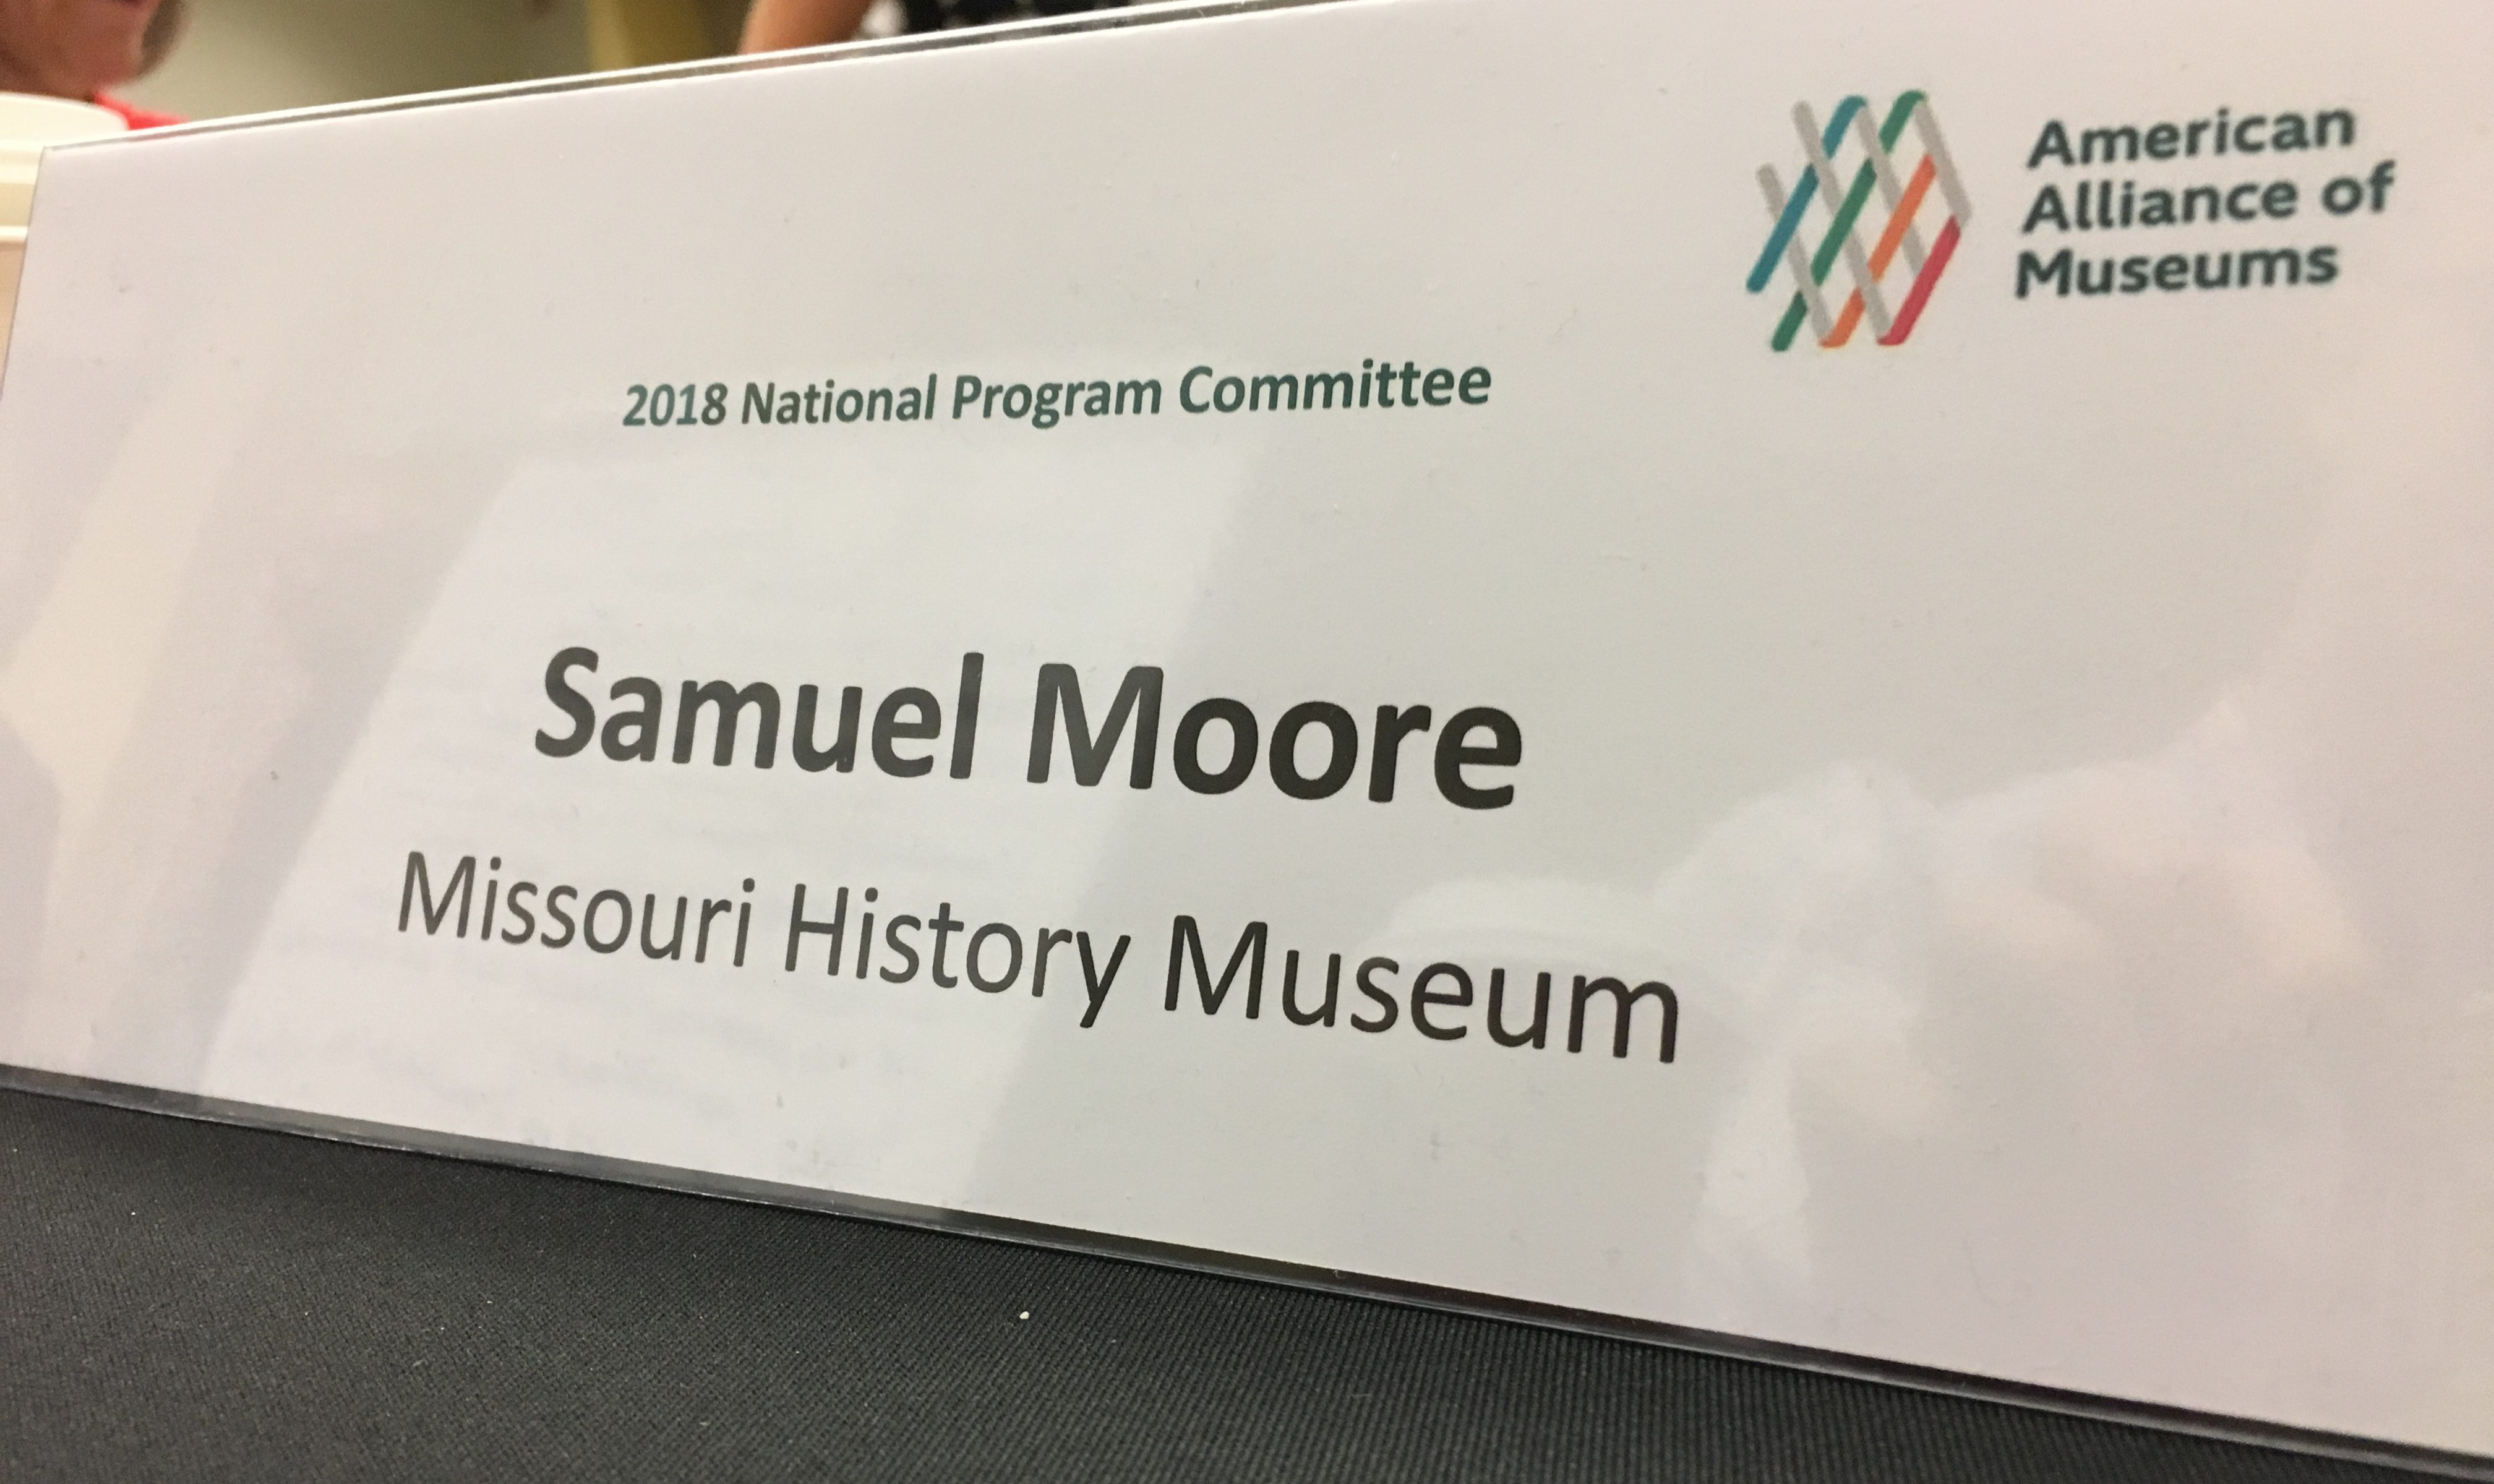 Image of Samuel Moore's name plate at the National Program Committee meeting